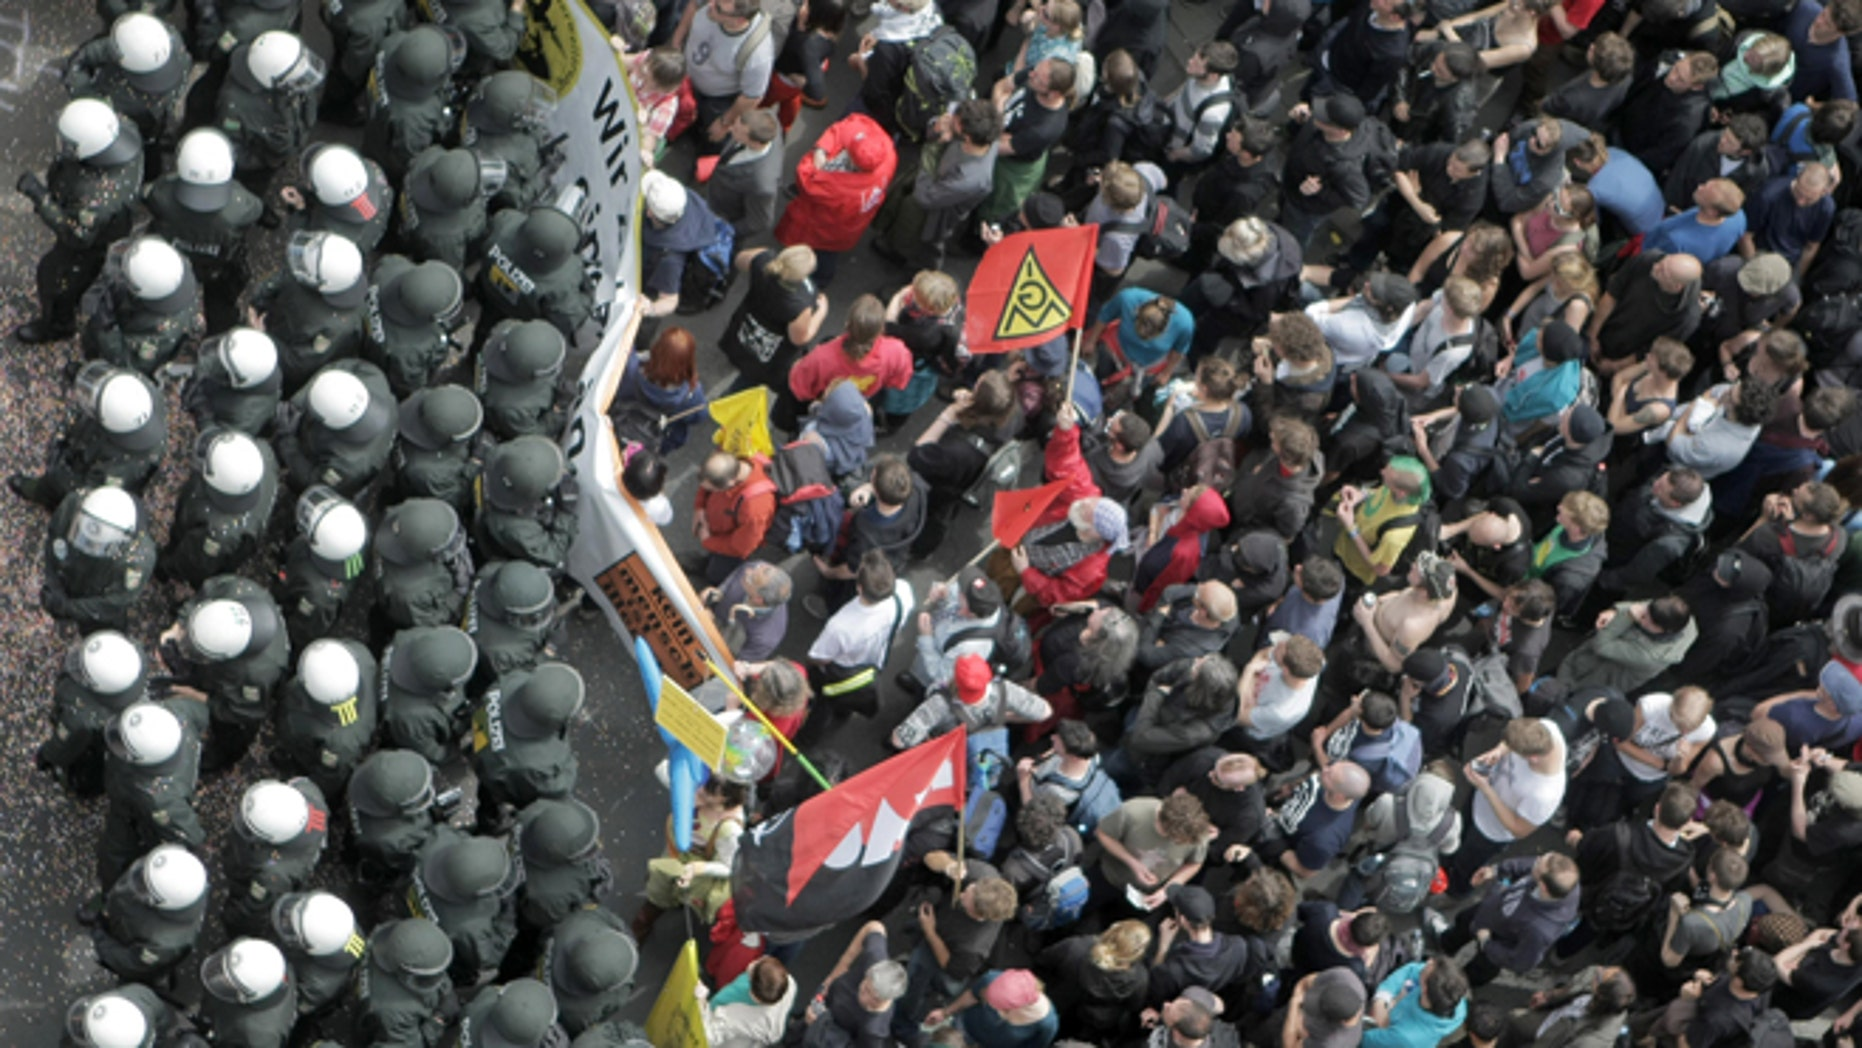 June 1, 2013: German police officers block anti capitalism Blockupy protesters with several thousand people taking part in Frankfurt. Crowds of anti-capitalist protesters blocked streets leading to the European Central Bank in Germany's financial capital to protest its role in pushing for austerity cutbacks as a way to fight the continent's debt crisis.